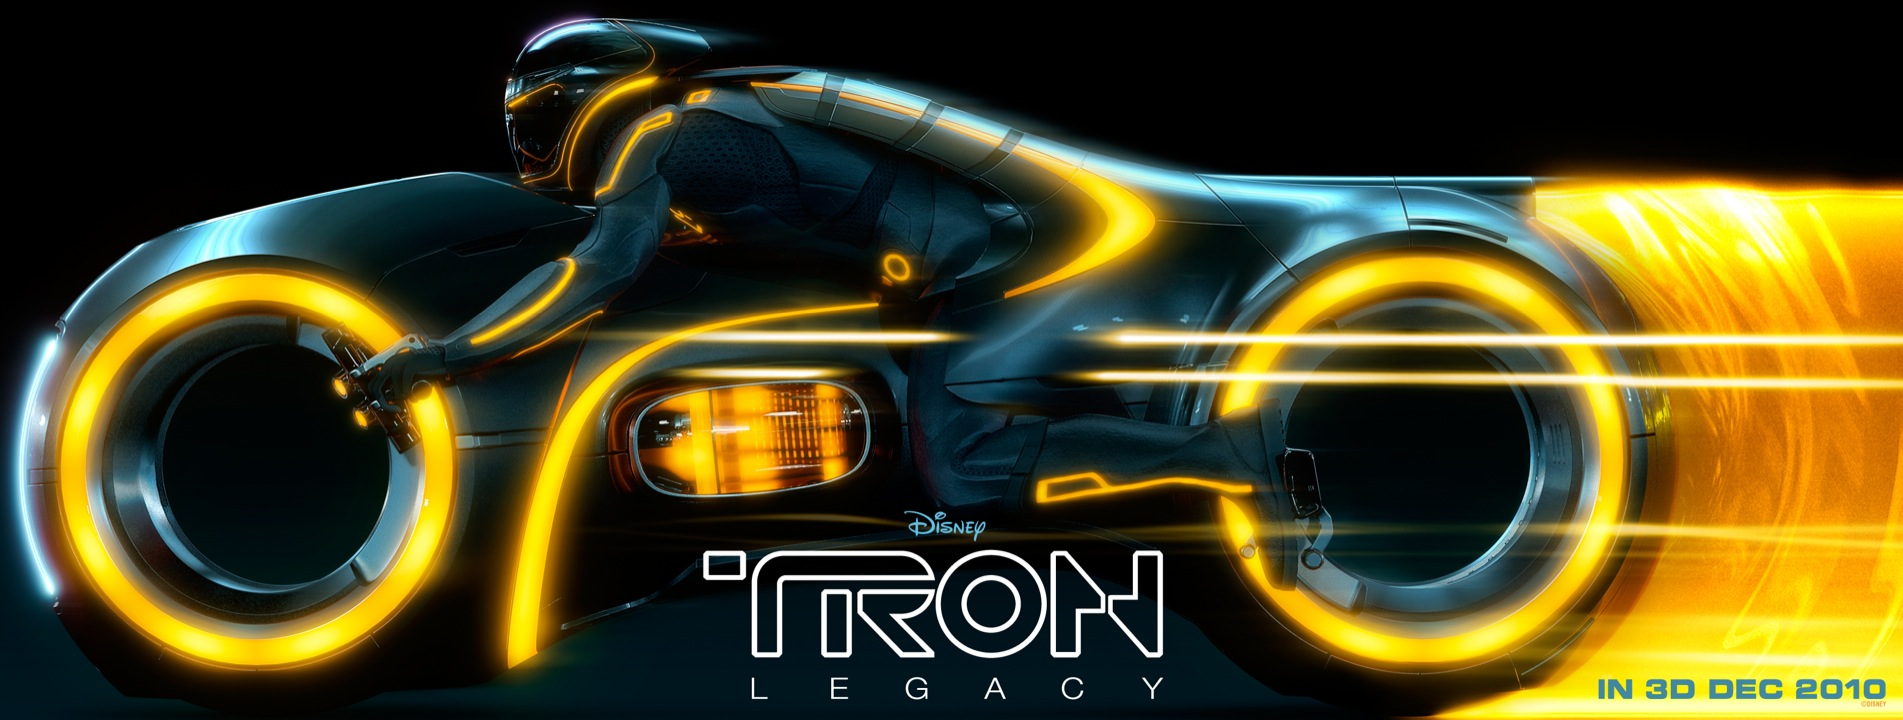 itunes-trailers-gallery-tron_yellow_v2_8-10-2010_720.jpg